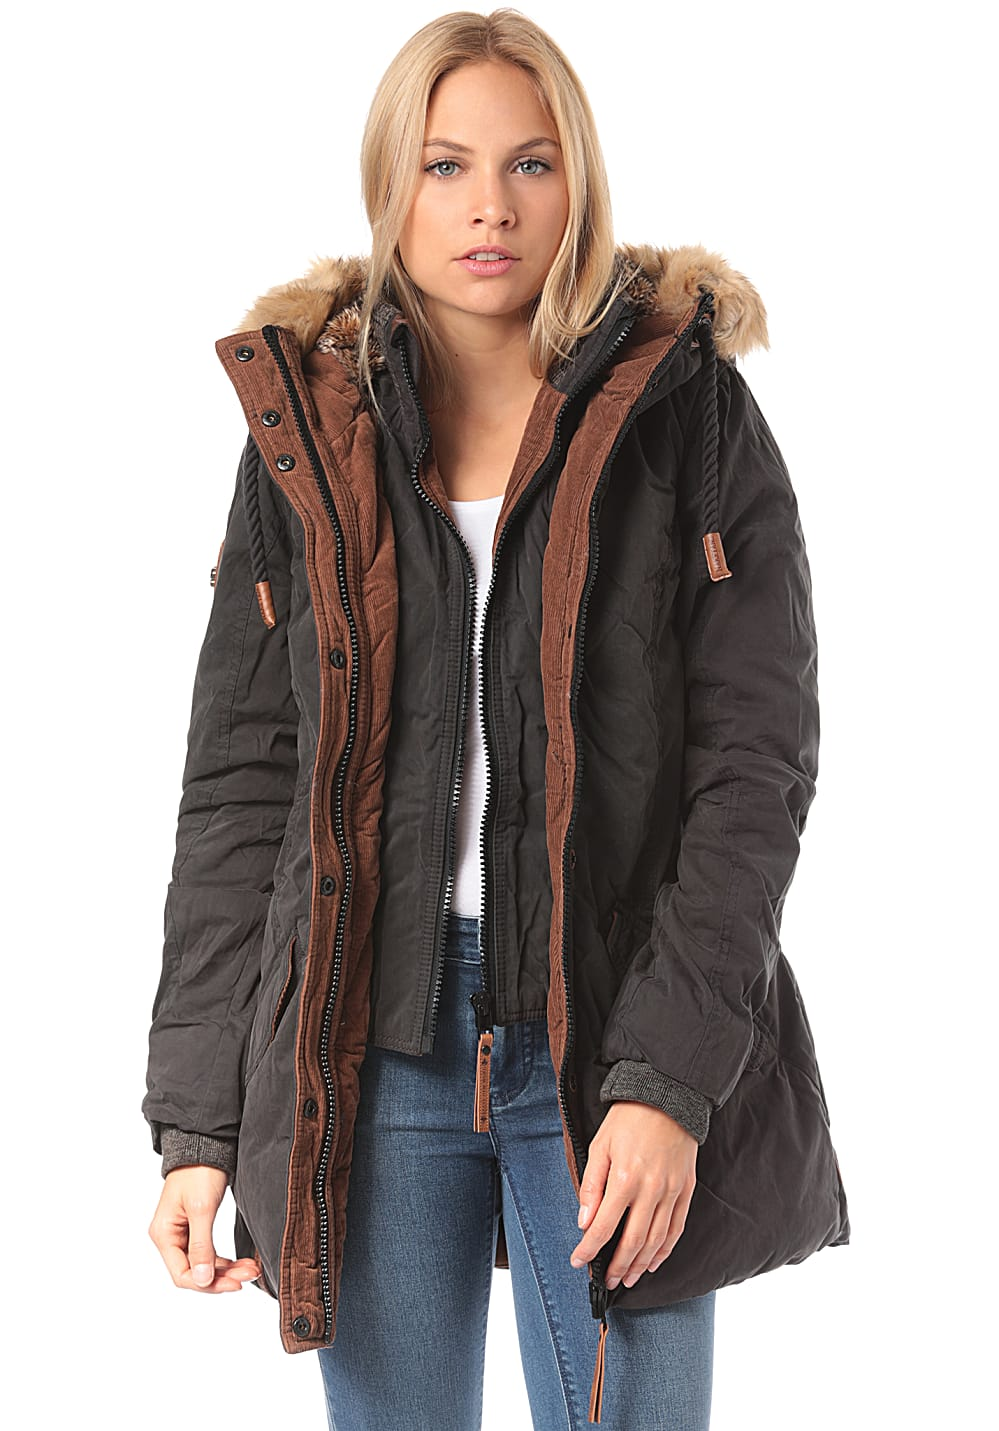 NAKETANO Kaktus Trifft Arschgeweih Jacket for Women Black